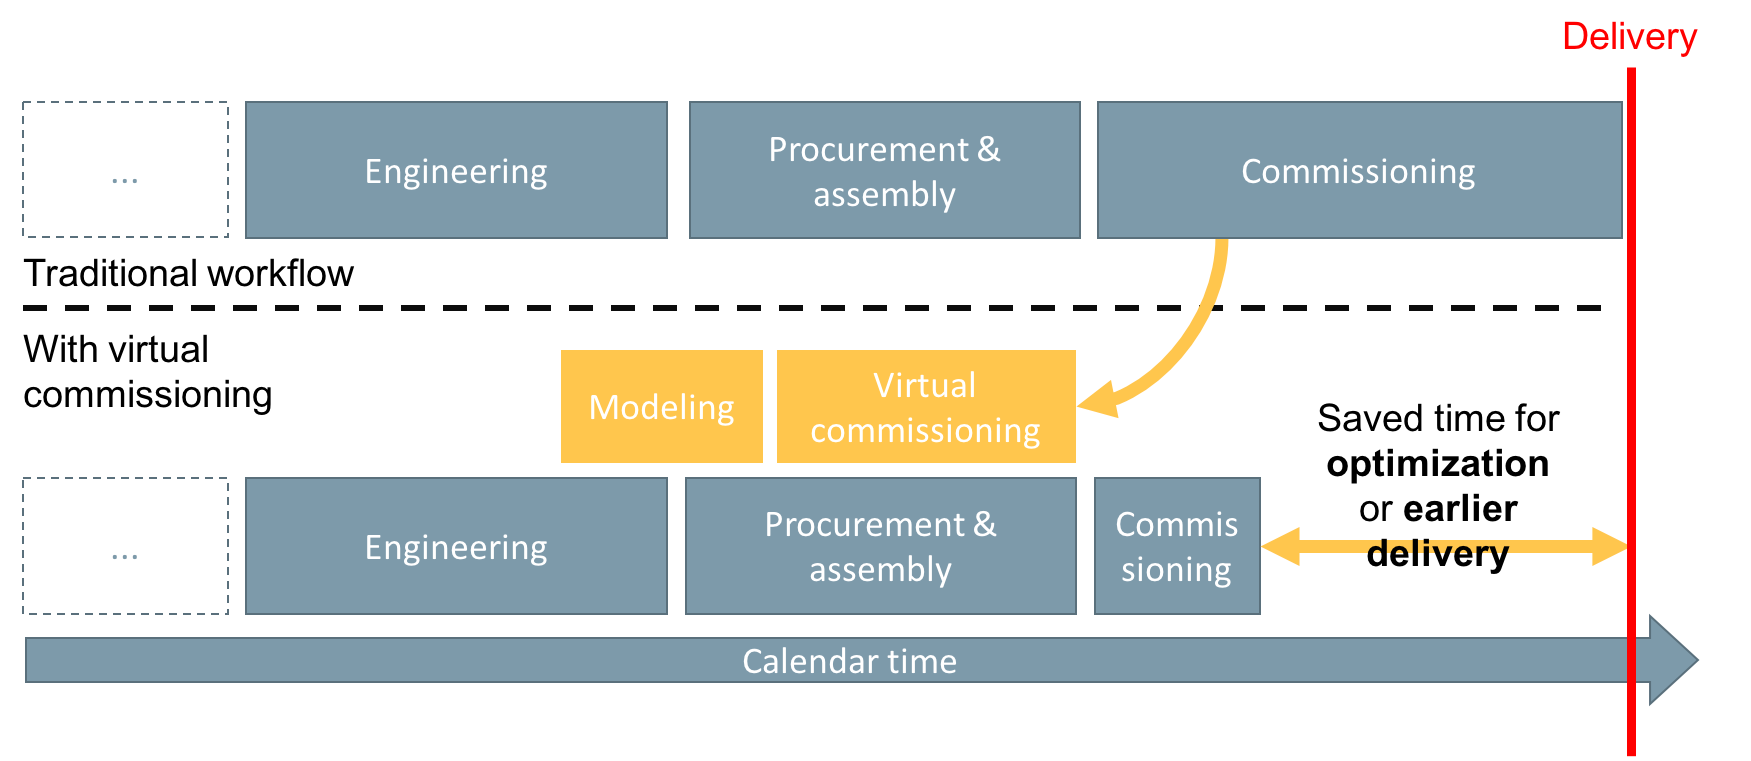 virtual_commissioning_workflow-1